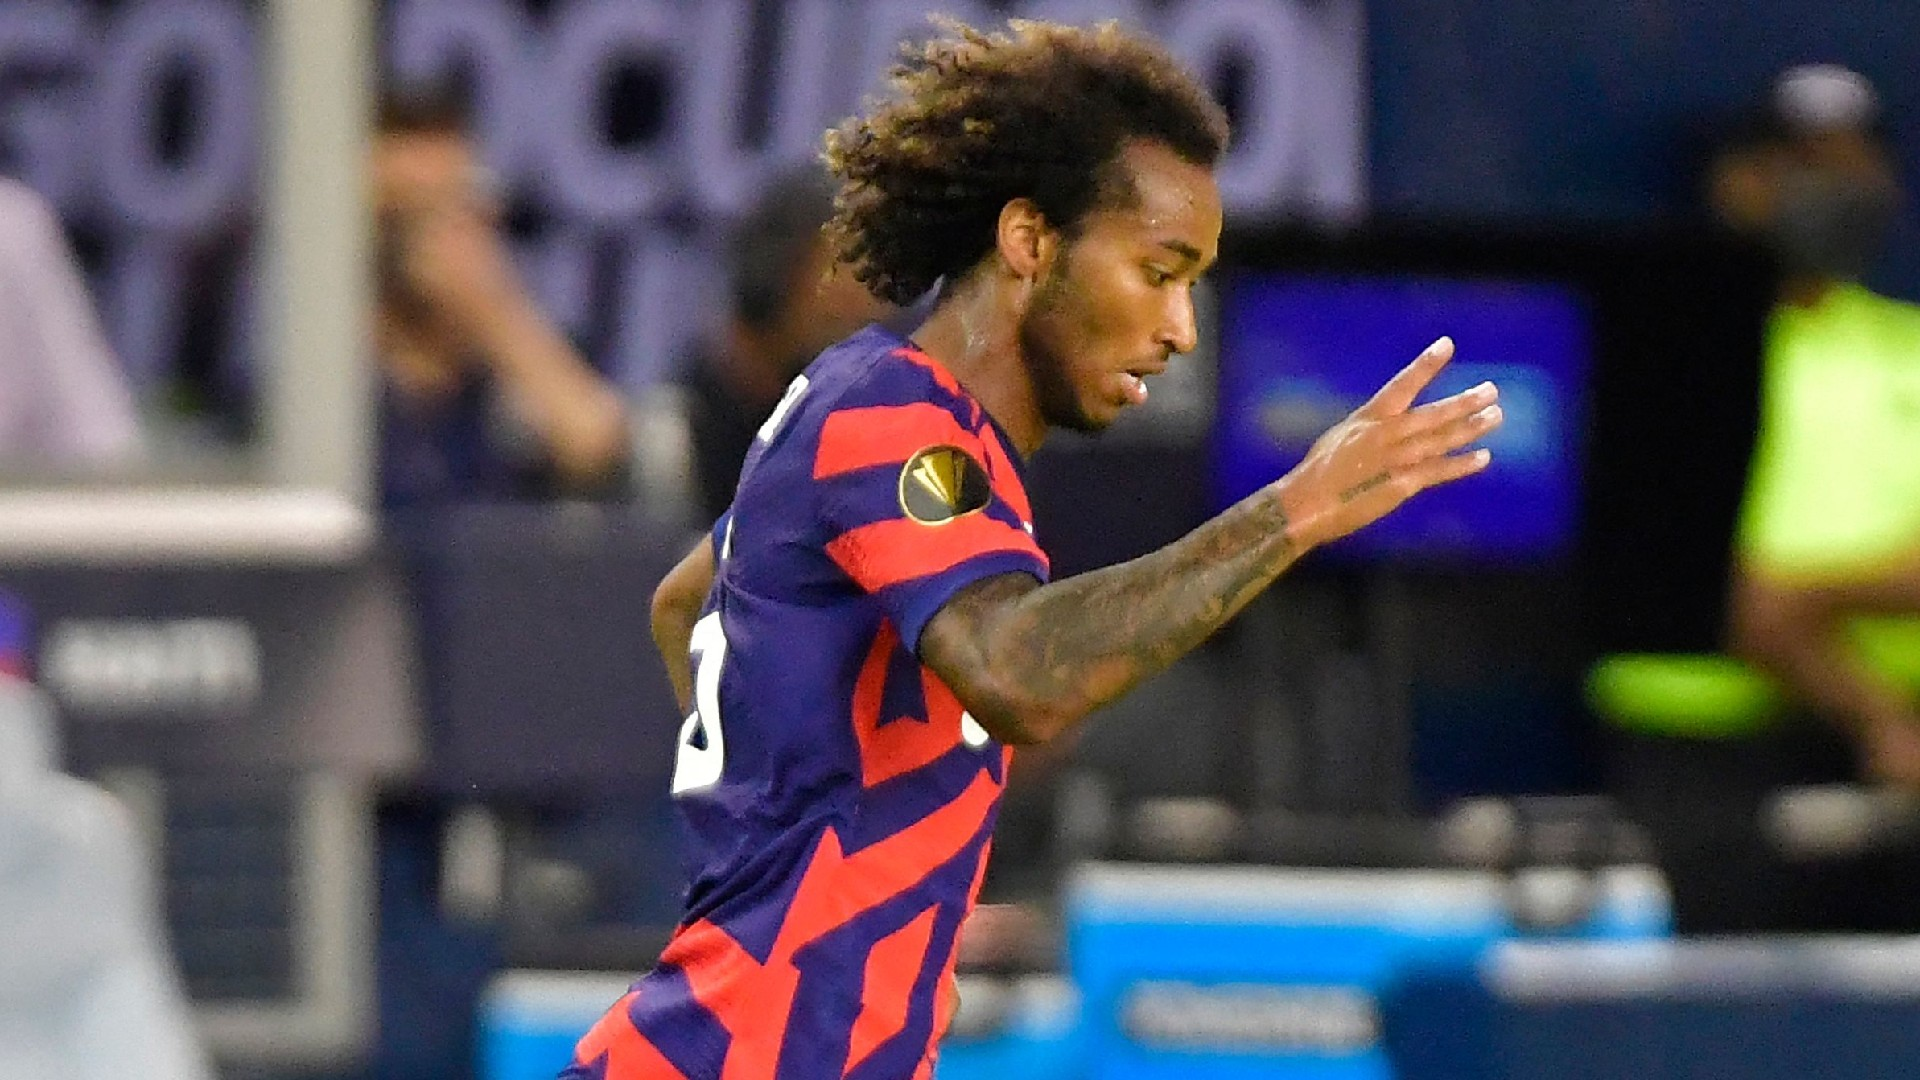 Venezia technical director confirms club is nearing deal for USMNT midfielder Busio